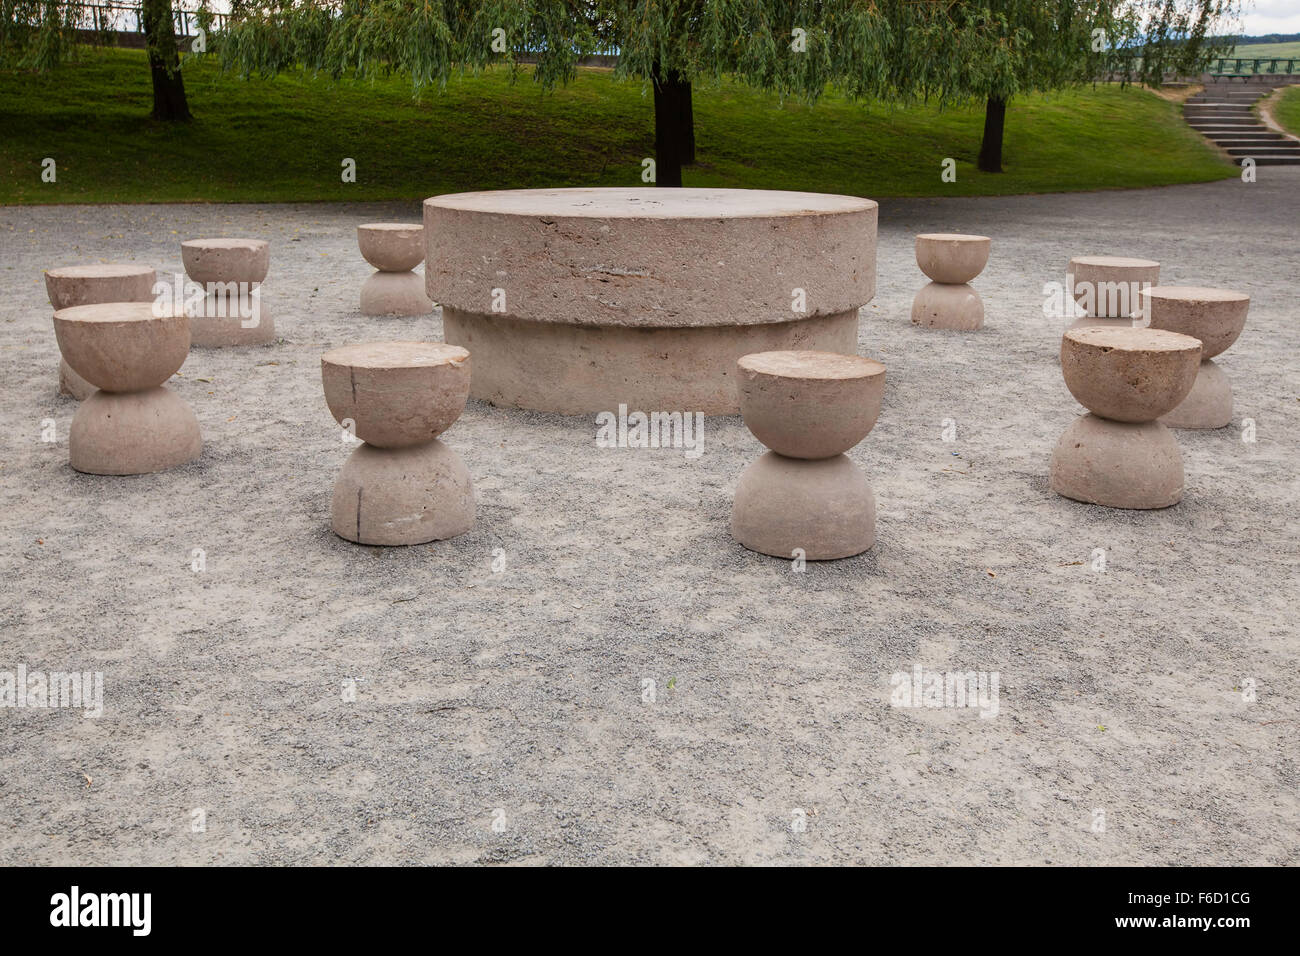 Table Of Silence Is One Of The Three Pieces Of Targu Jiu Monumental ... for Brancusi Table Of Silence  155fiz